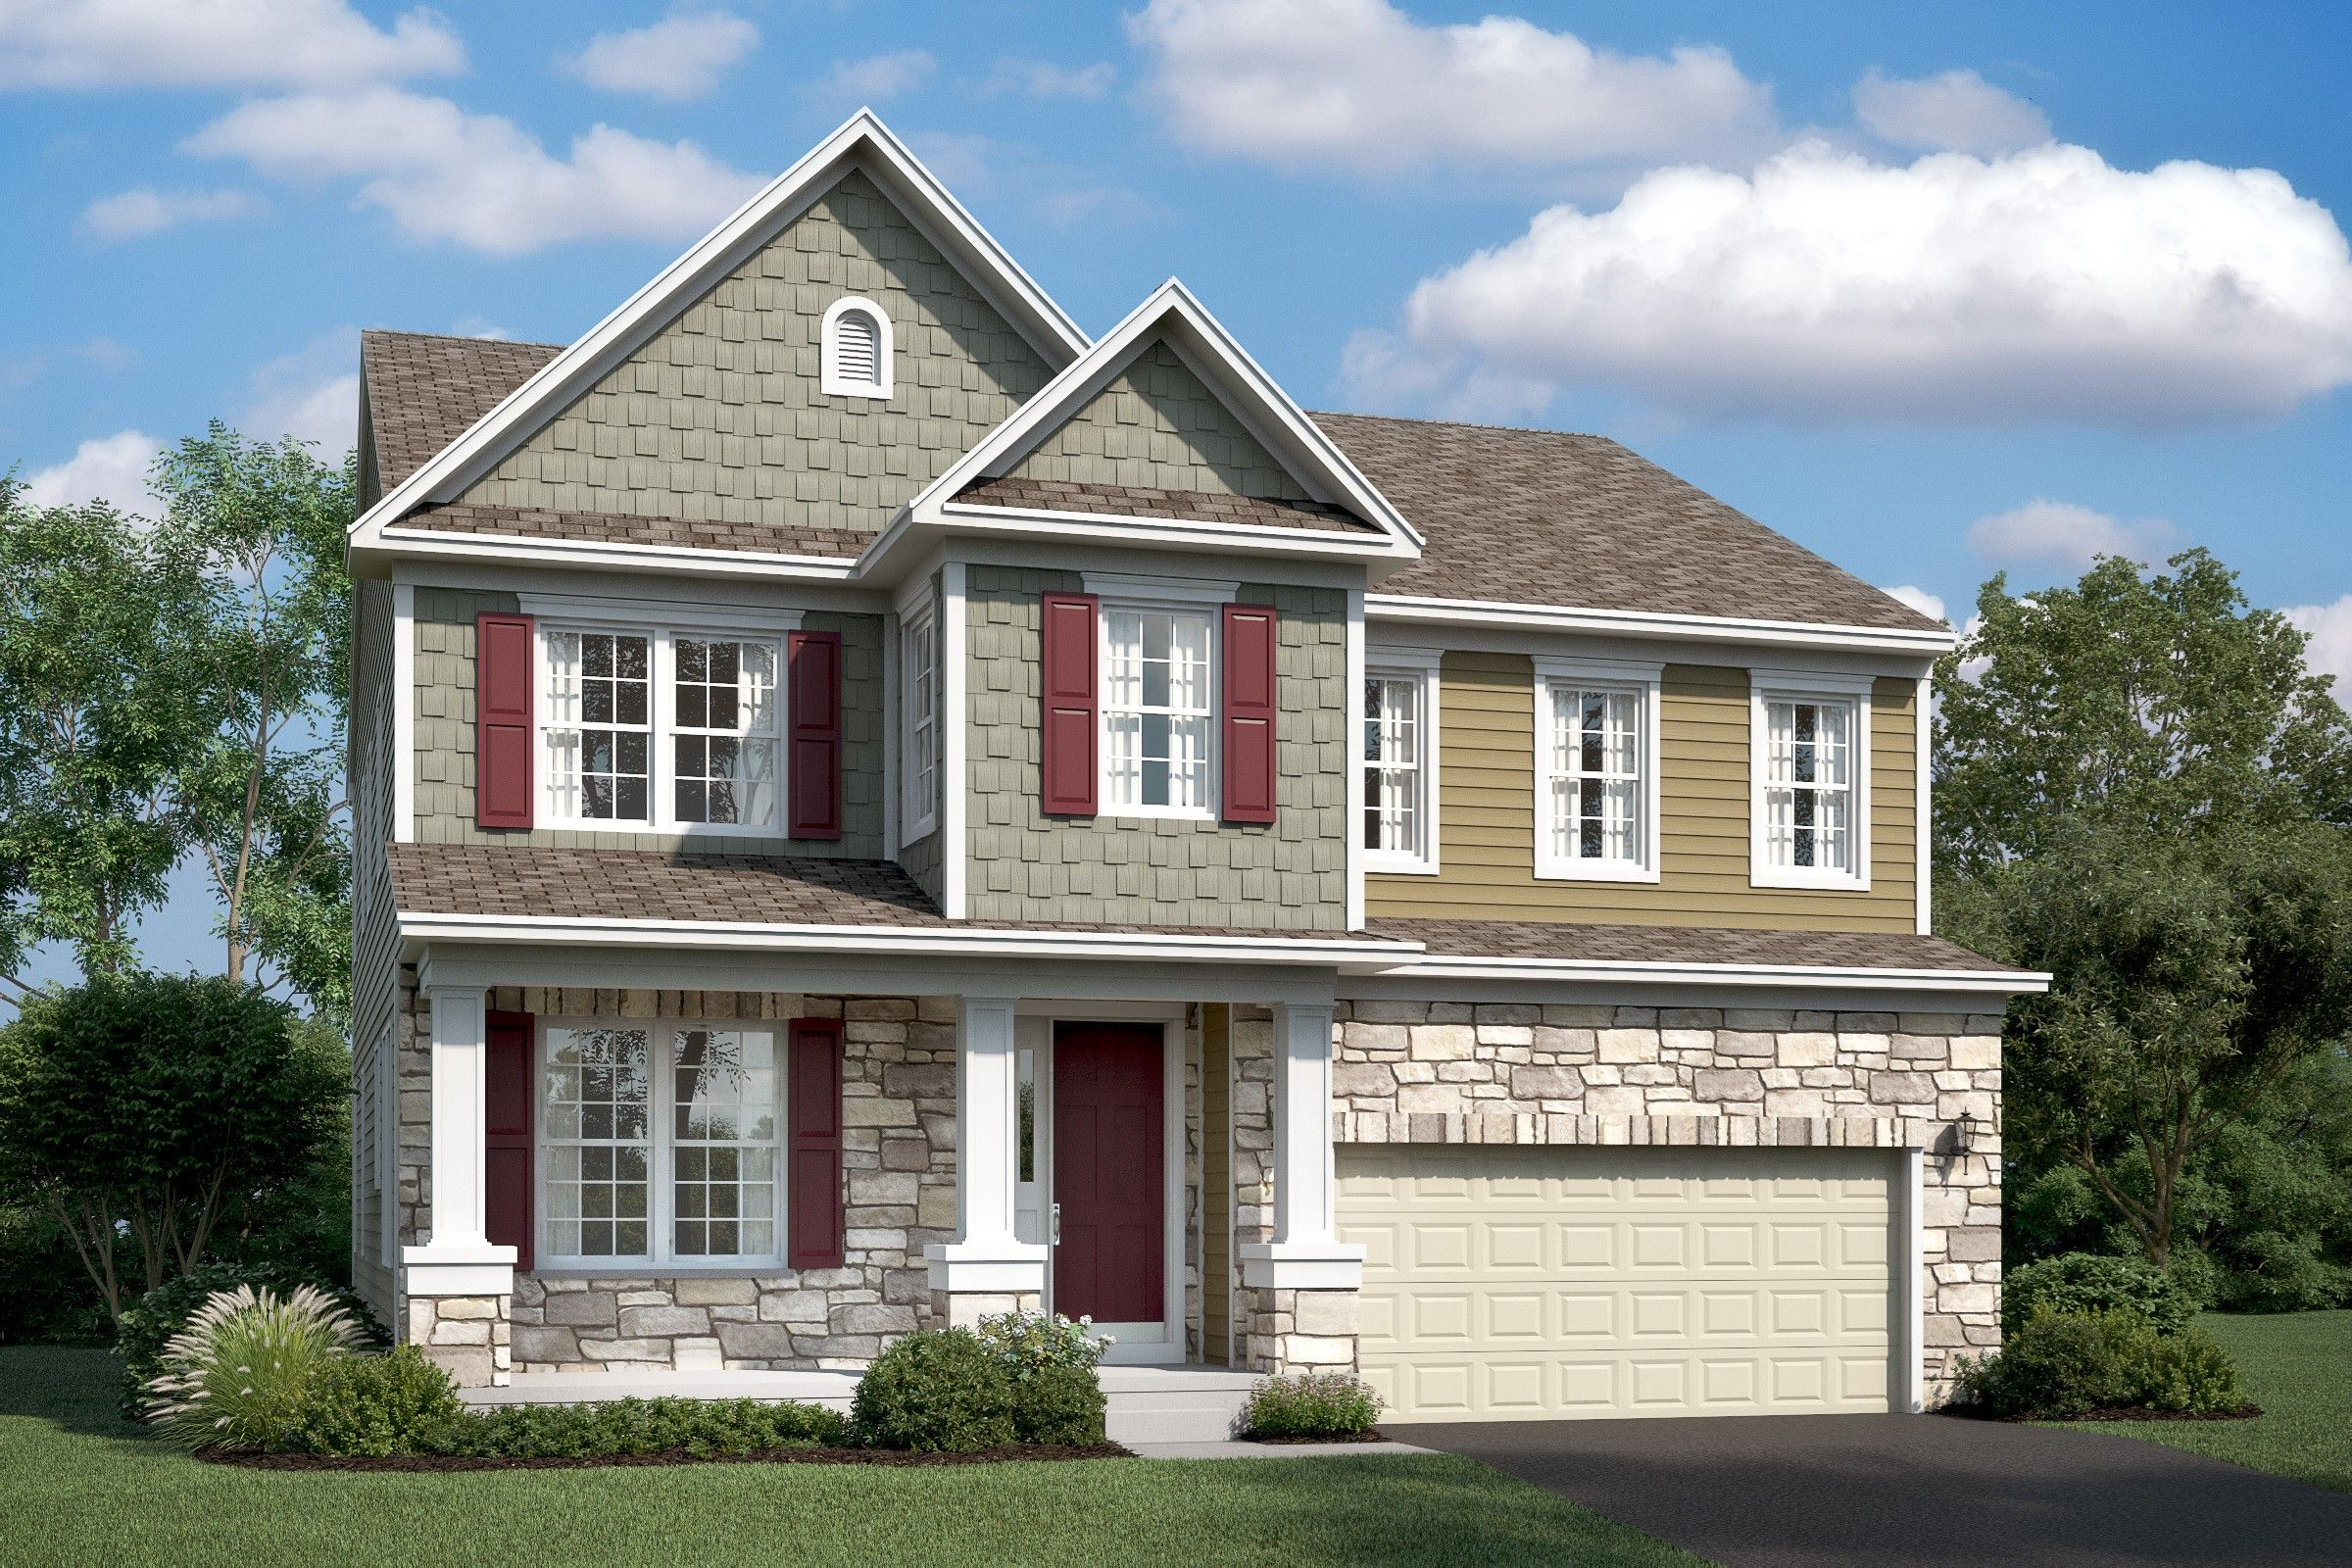 Single Family for Active at Stone Mill - Lexington 7904 Meridian Drive Pasadena, Maryland 21122 United States